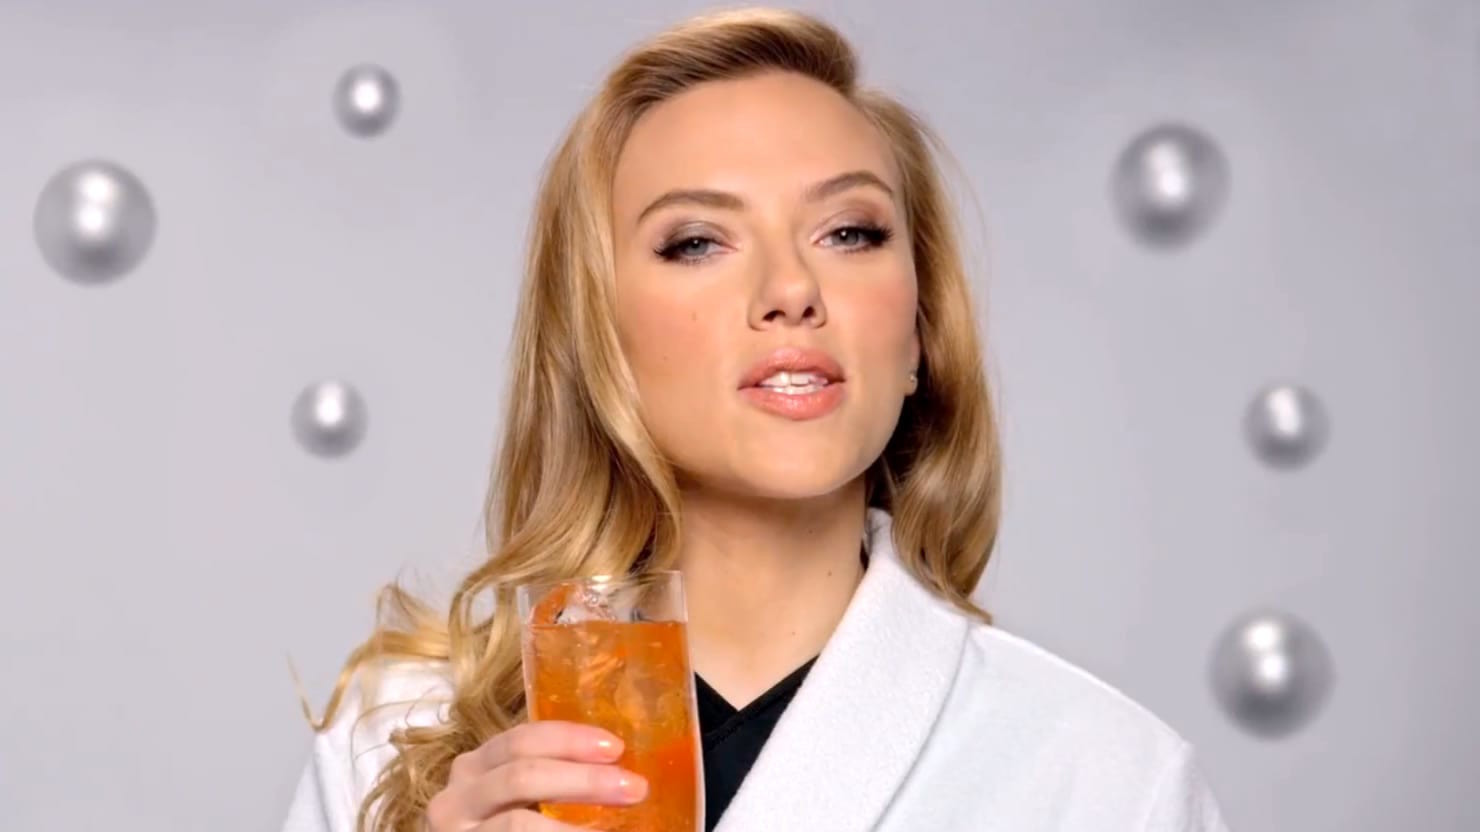 Actress Scarlett Johansson was a face of SodaStream.